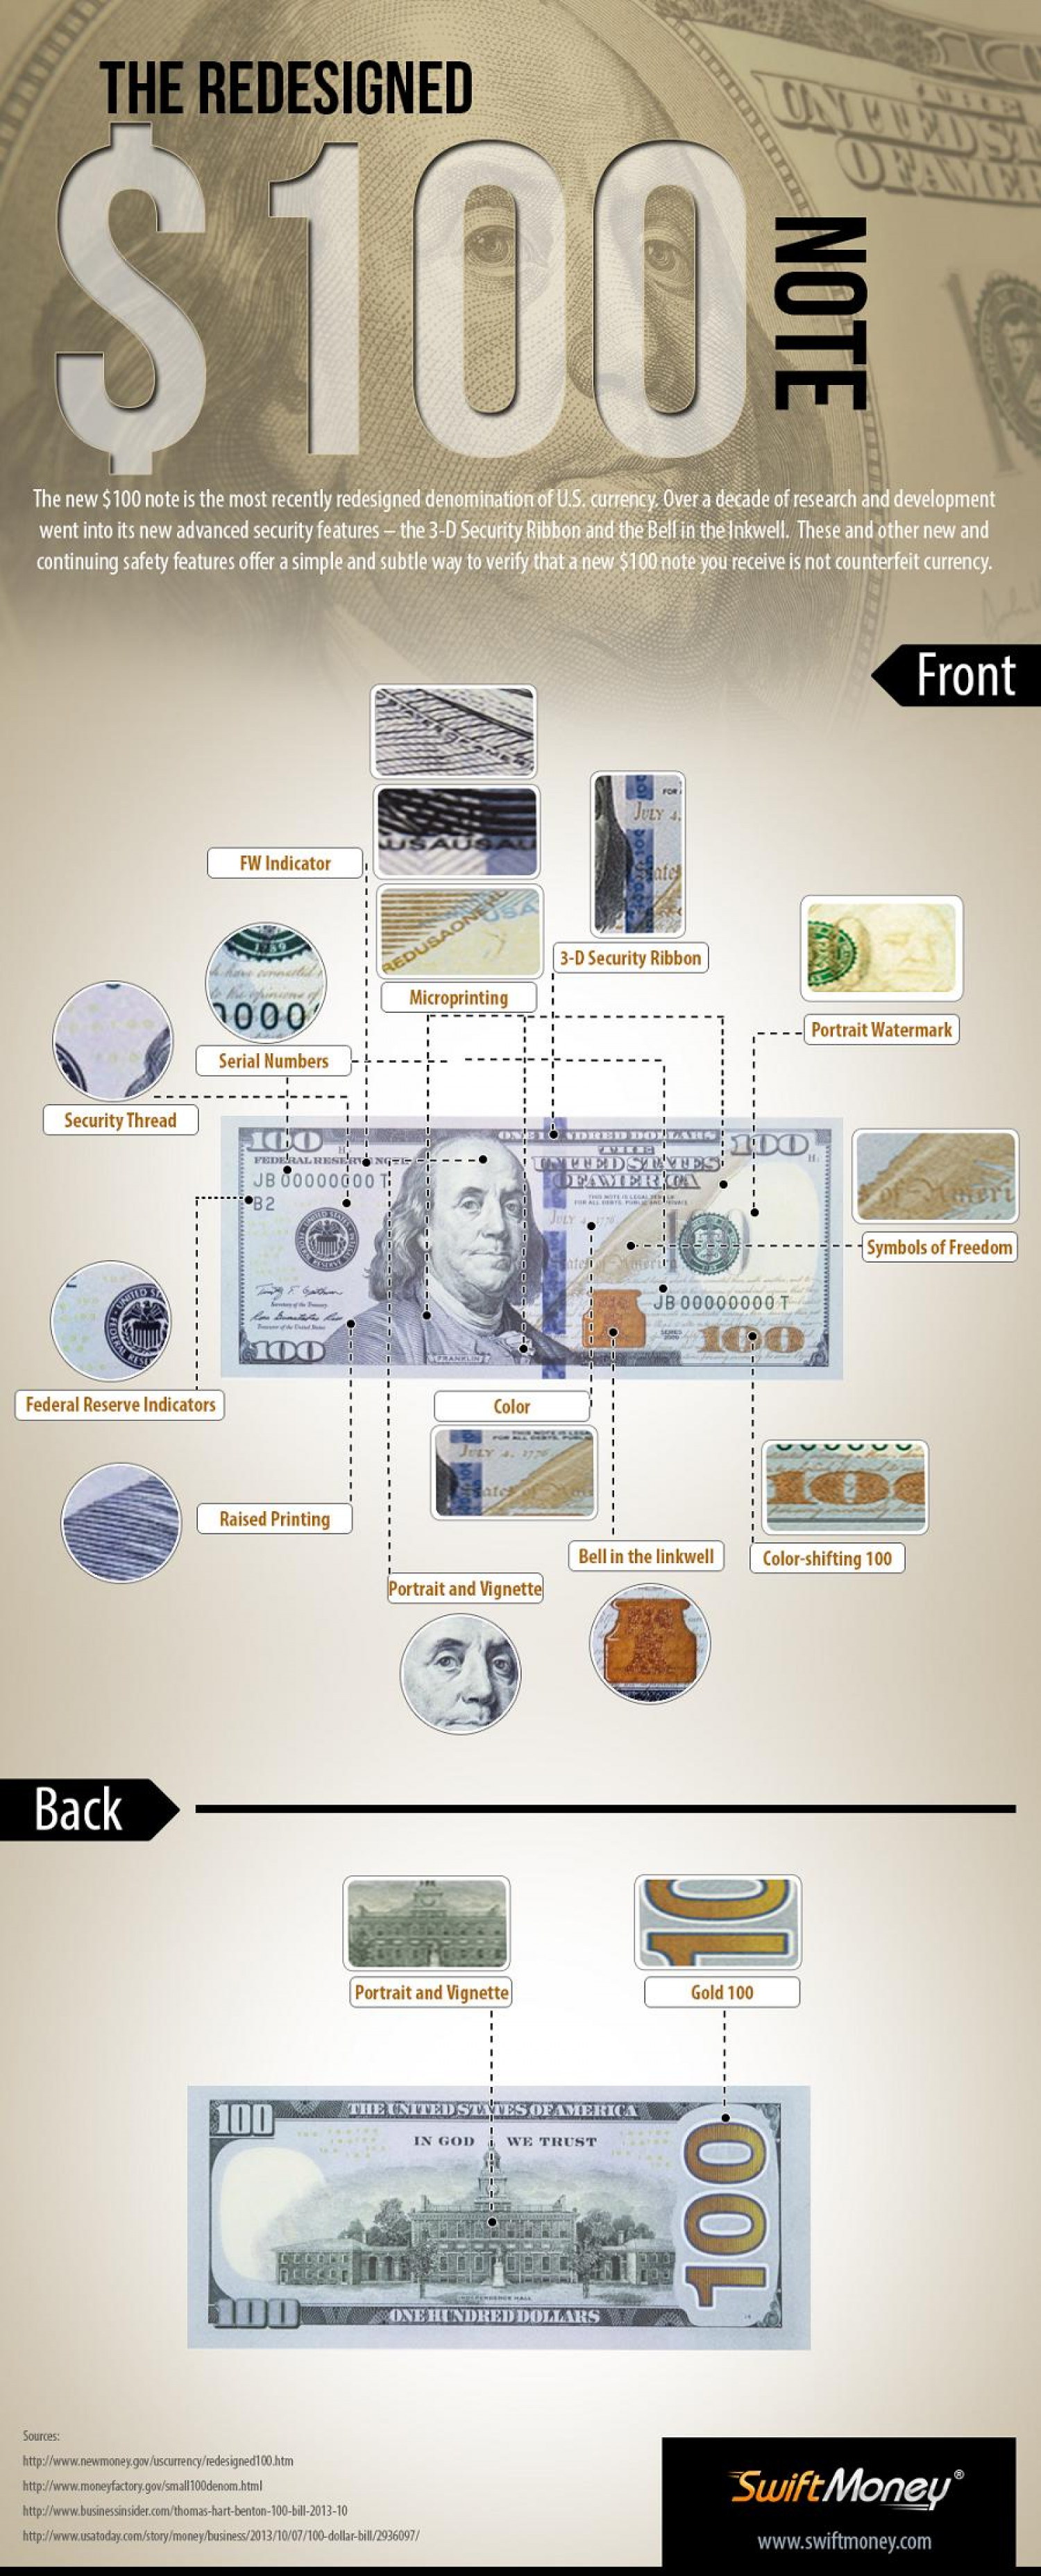 The redesigned $ 100 note  Infographic